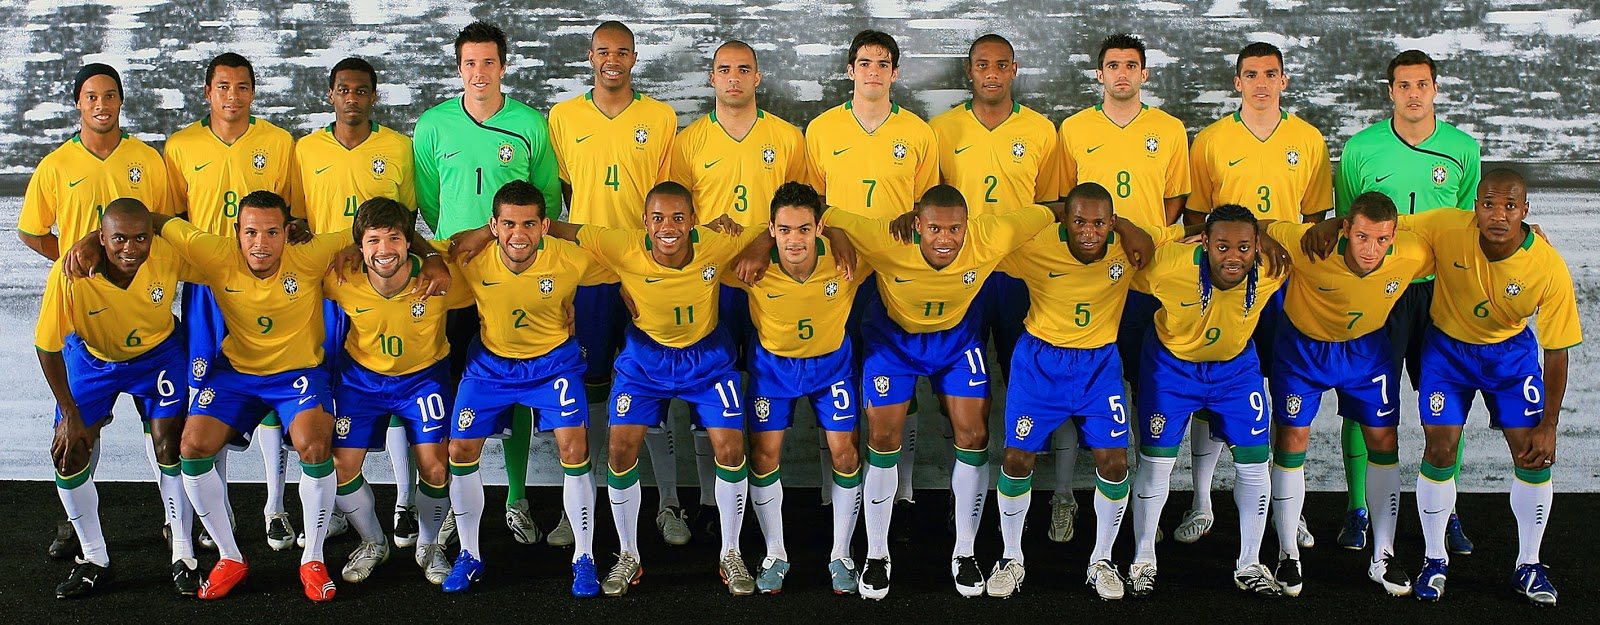 Brazil soccer wallpaper 2013